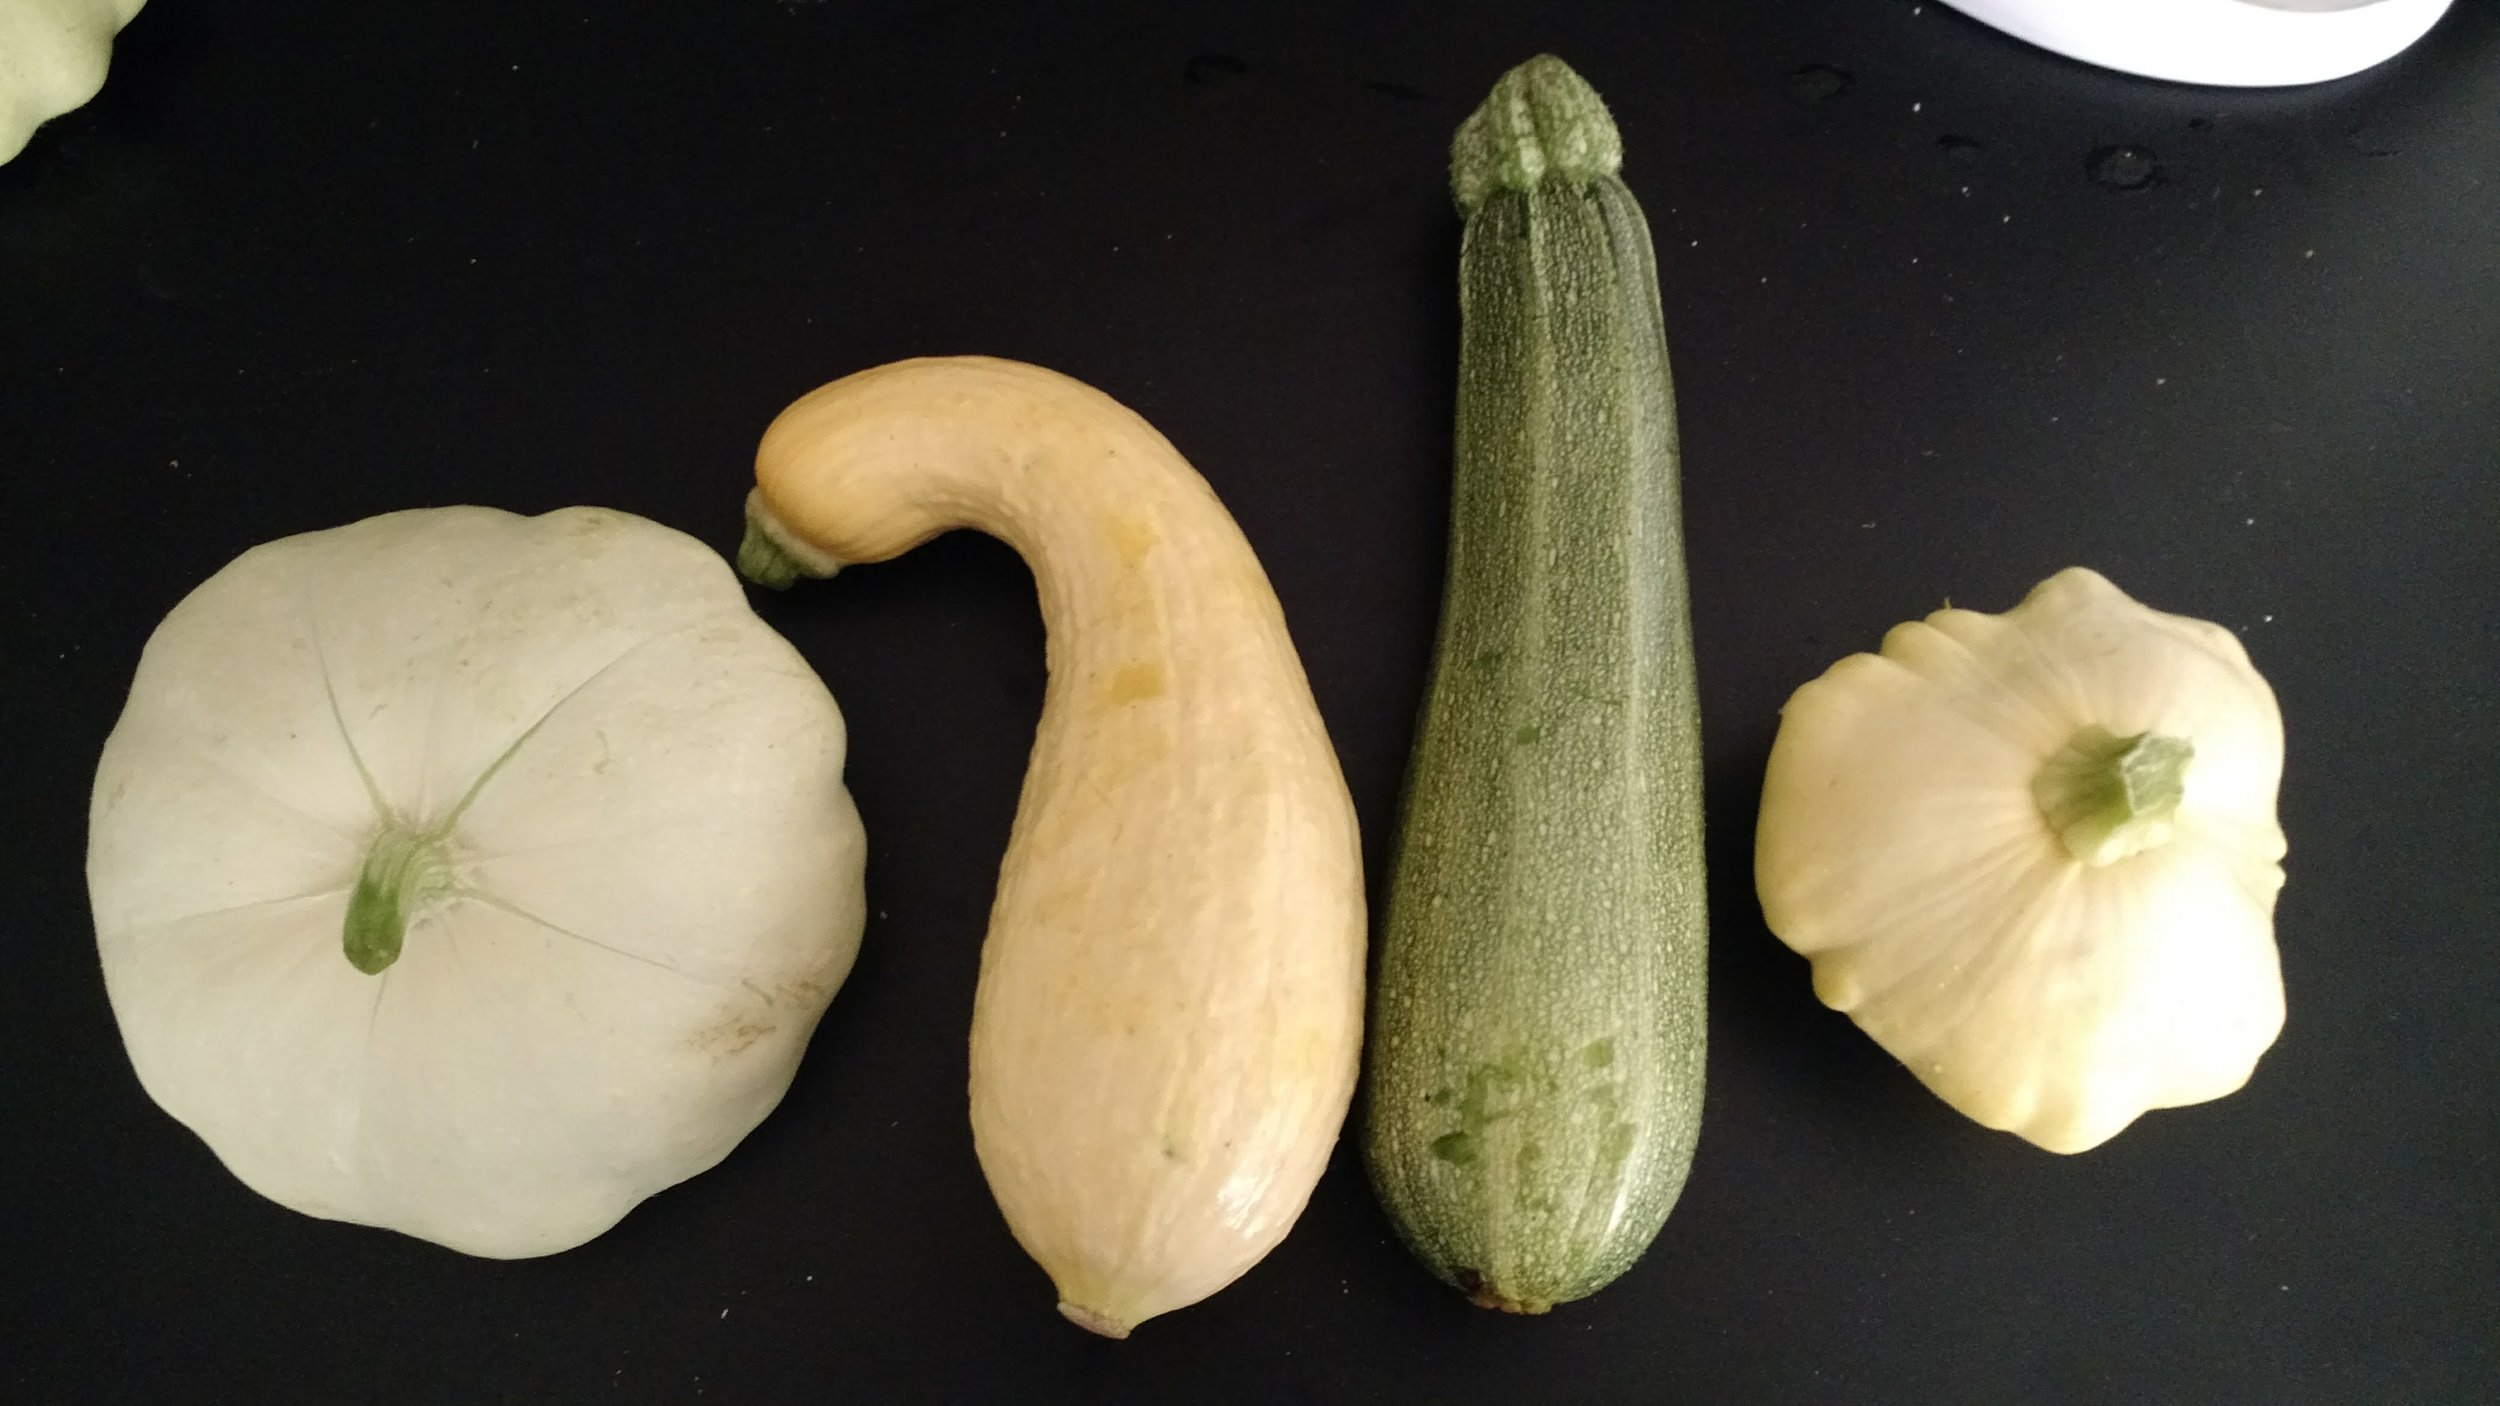 From Left to right:  Green Patty Pan, Yellow Crookneck, Zucchini (marrow, courgette), Yellow Patty Pan